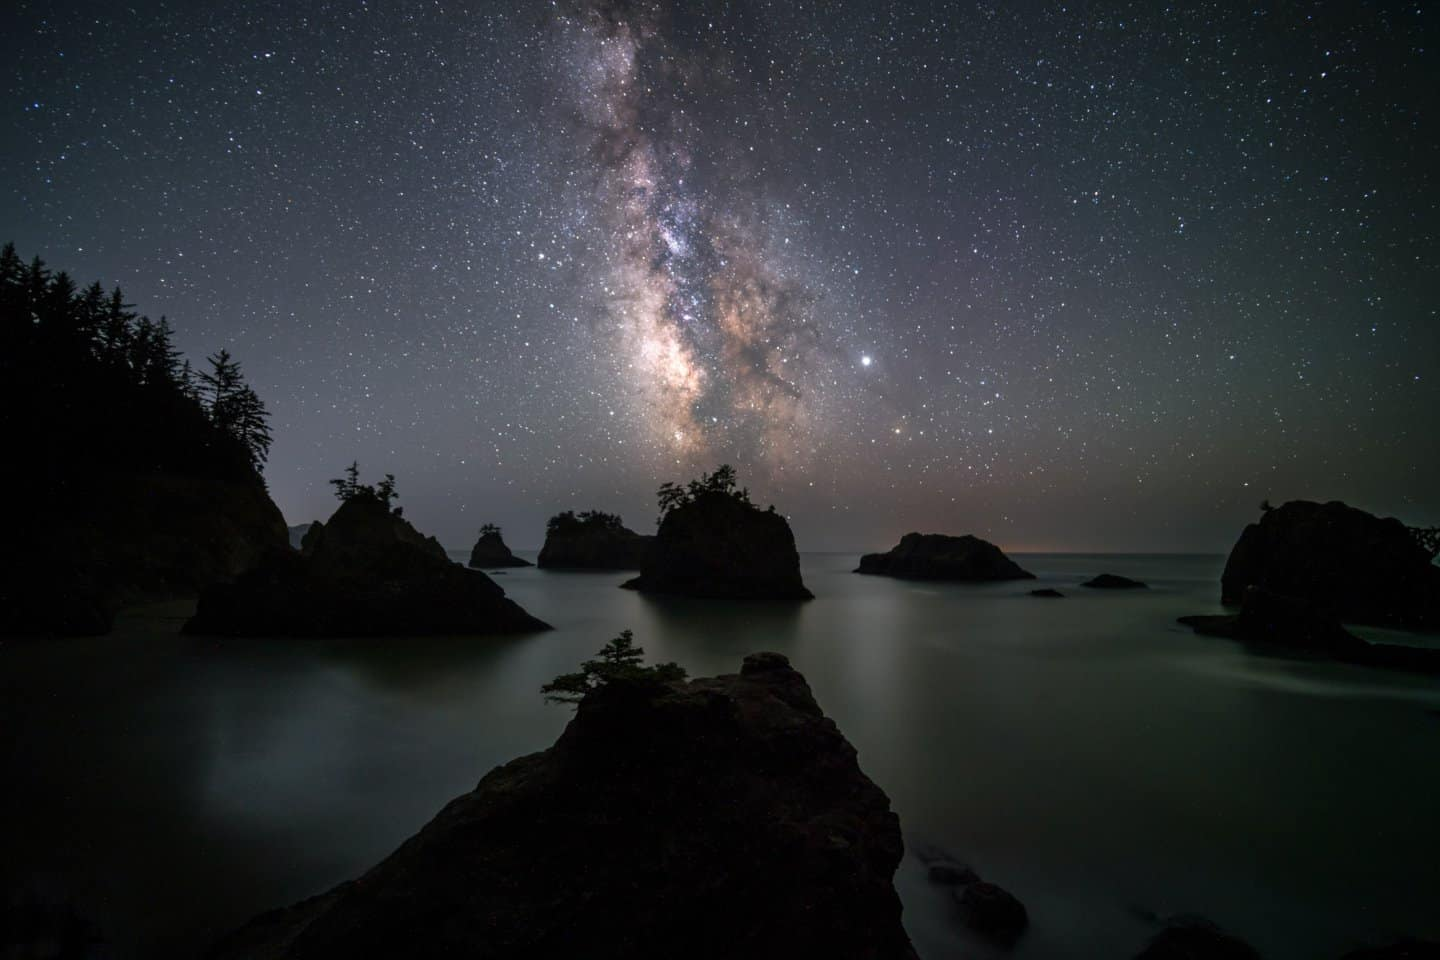 A Milky Way image of Secret Beach, one of the most popular astrophotography locations for Southern Oregon Coast photography at night.